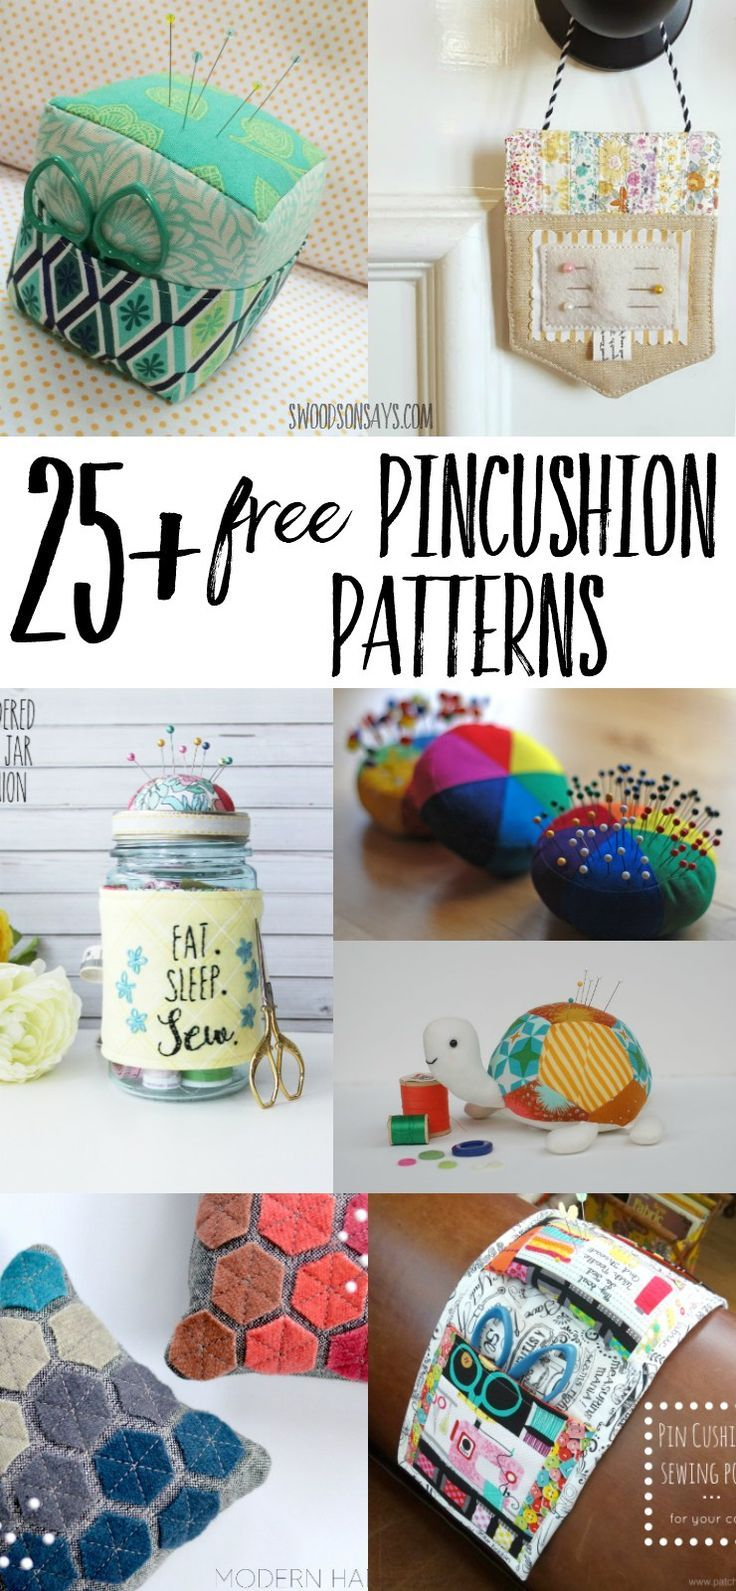 A big round up of free pincushion sewing patterns and tutorials! Perfect fabric scrap projects and handmade gifts to sew - use a free pincushion pattern to sew something up quickly! #pincushion #sewingtutorial